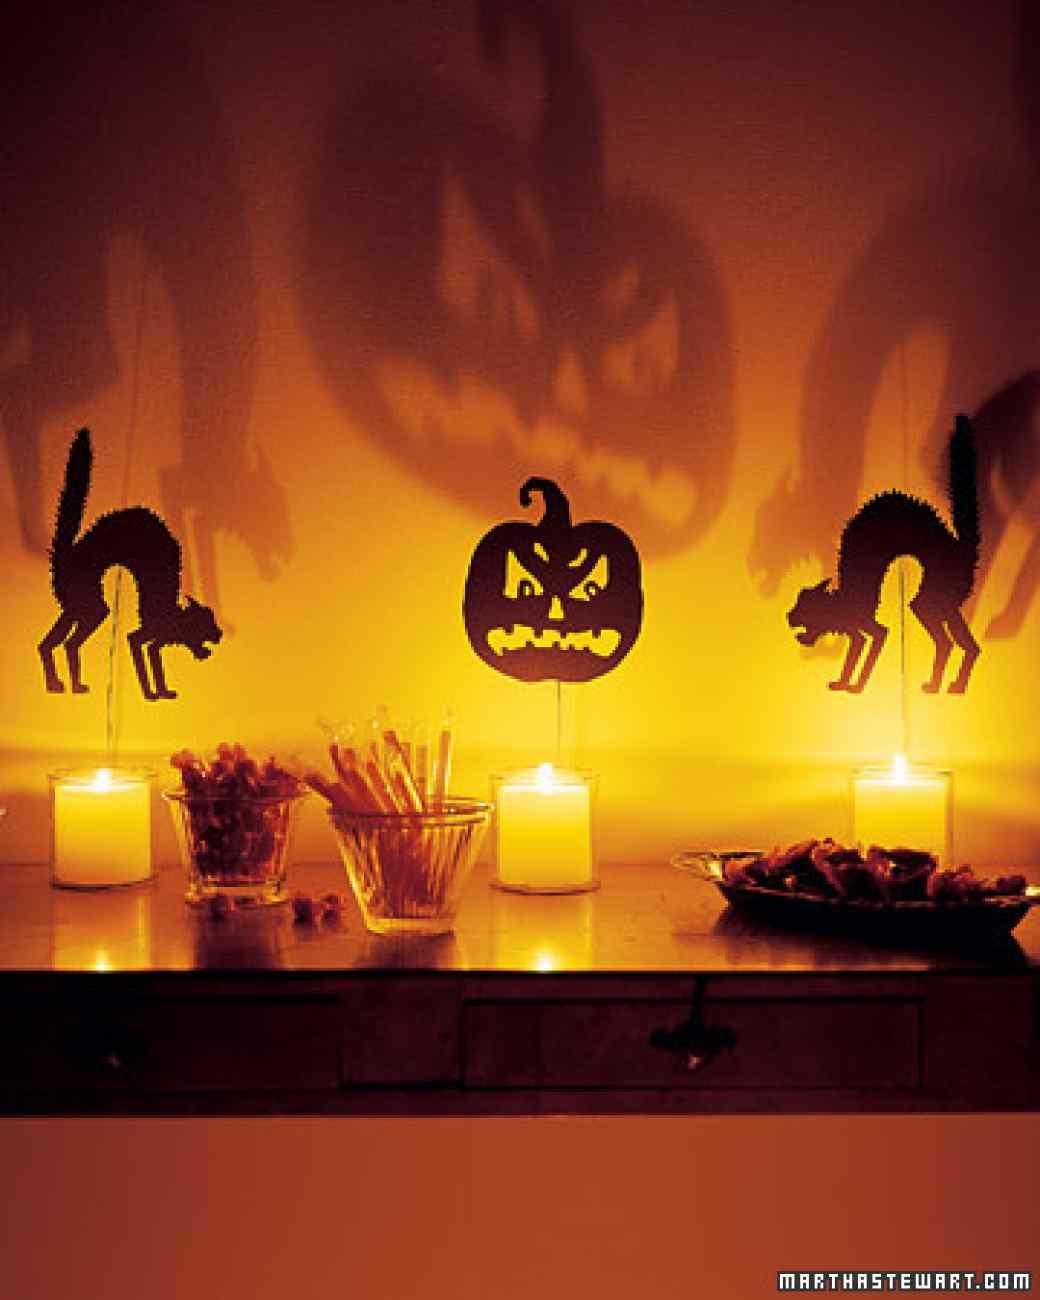 Halloween indoor decorations ideas - 49 Silhouettes Throw Off Spooky Fun